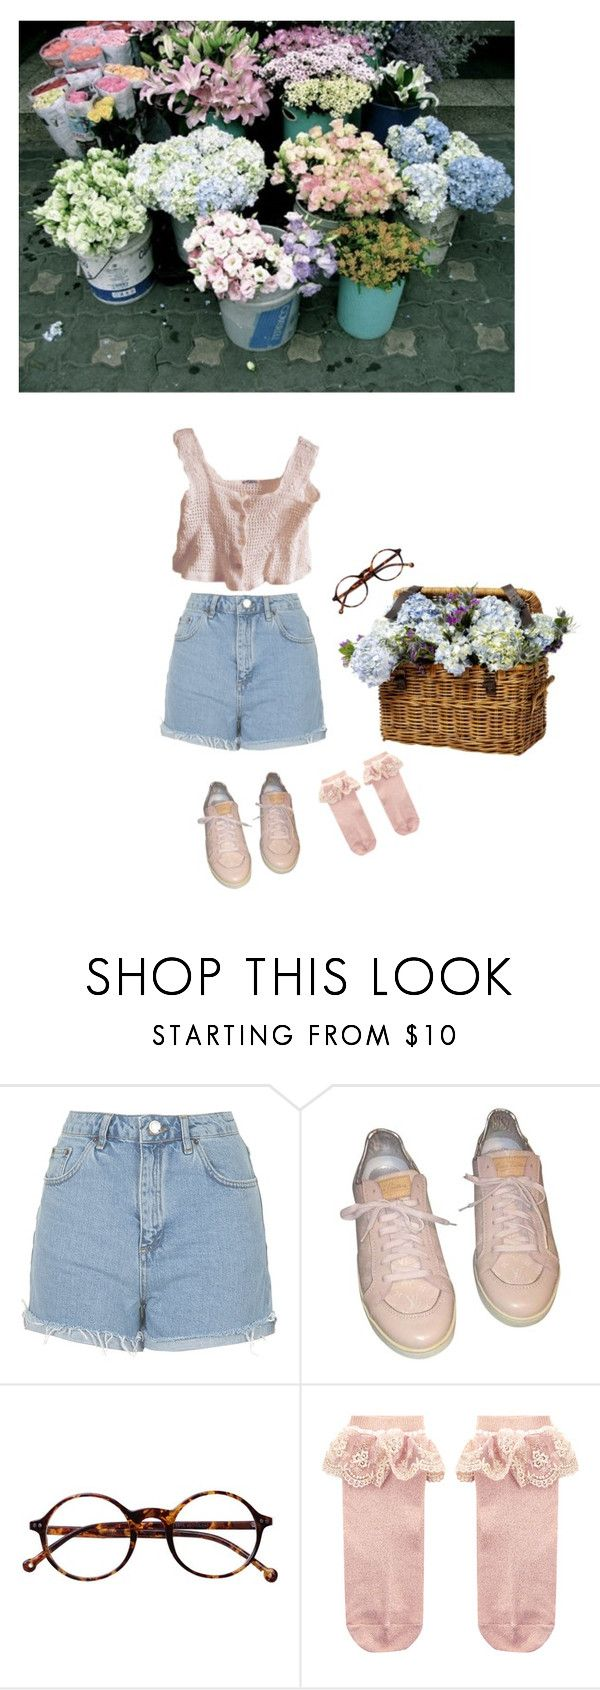 """Buying some flowers"" by noodlezz ❤ liked on Polyvore featuring Topshop, Louis Vuitton, Retrò, Monsoon, vintage, crochet, glasses and short"